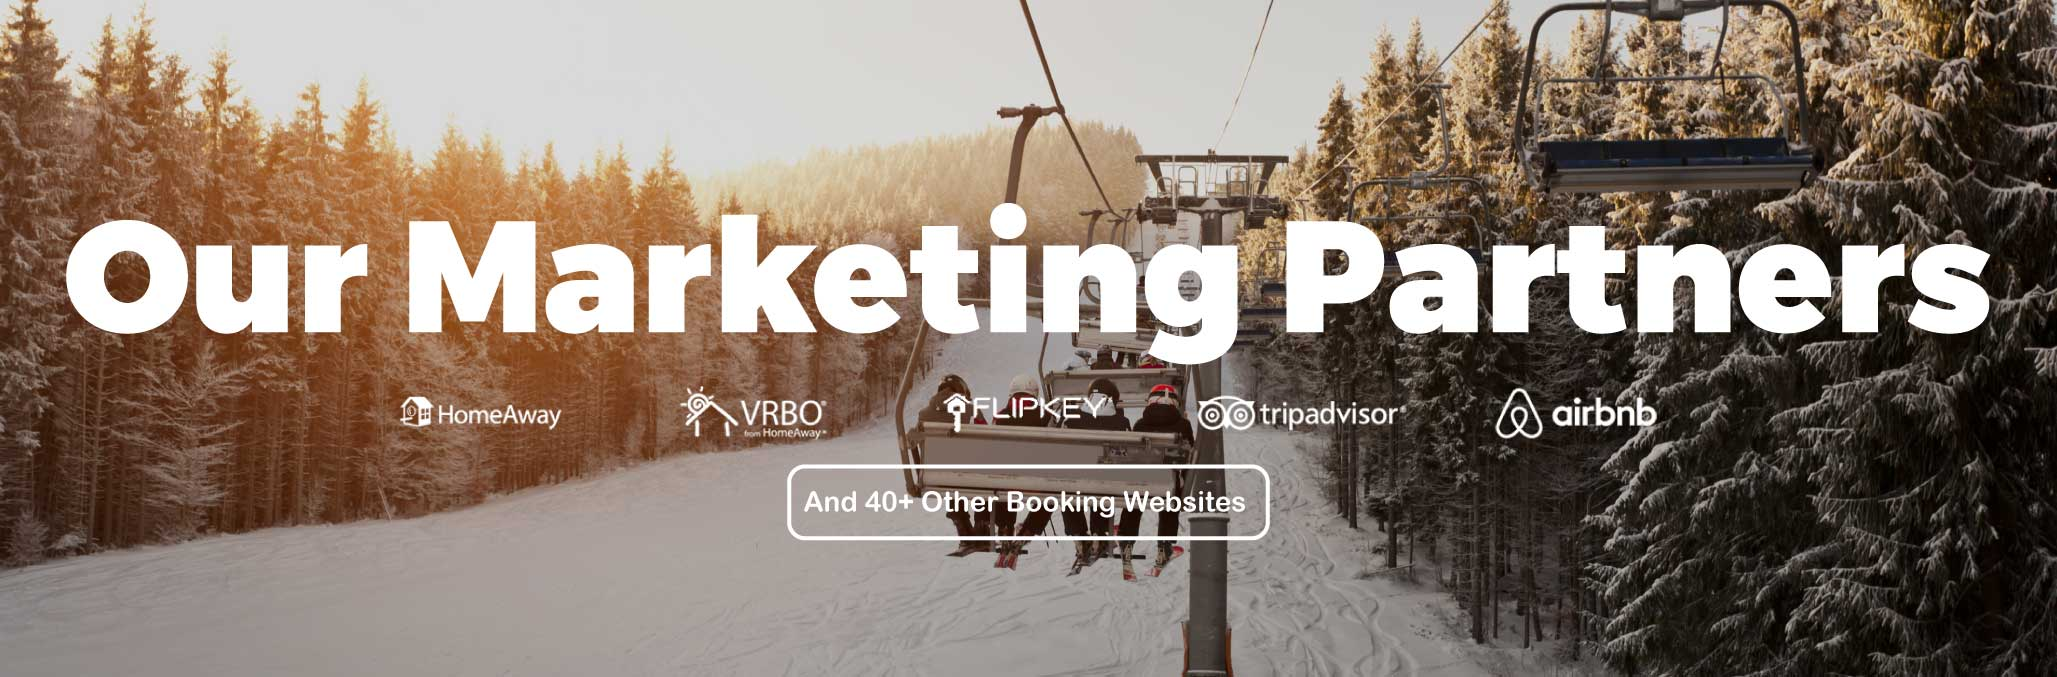 skyrun marketing partners slider